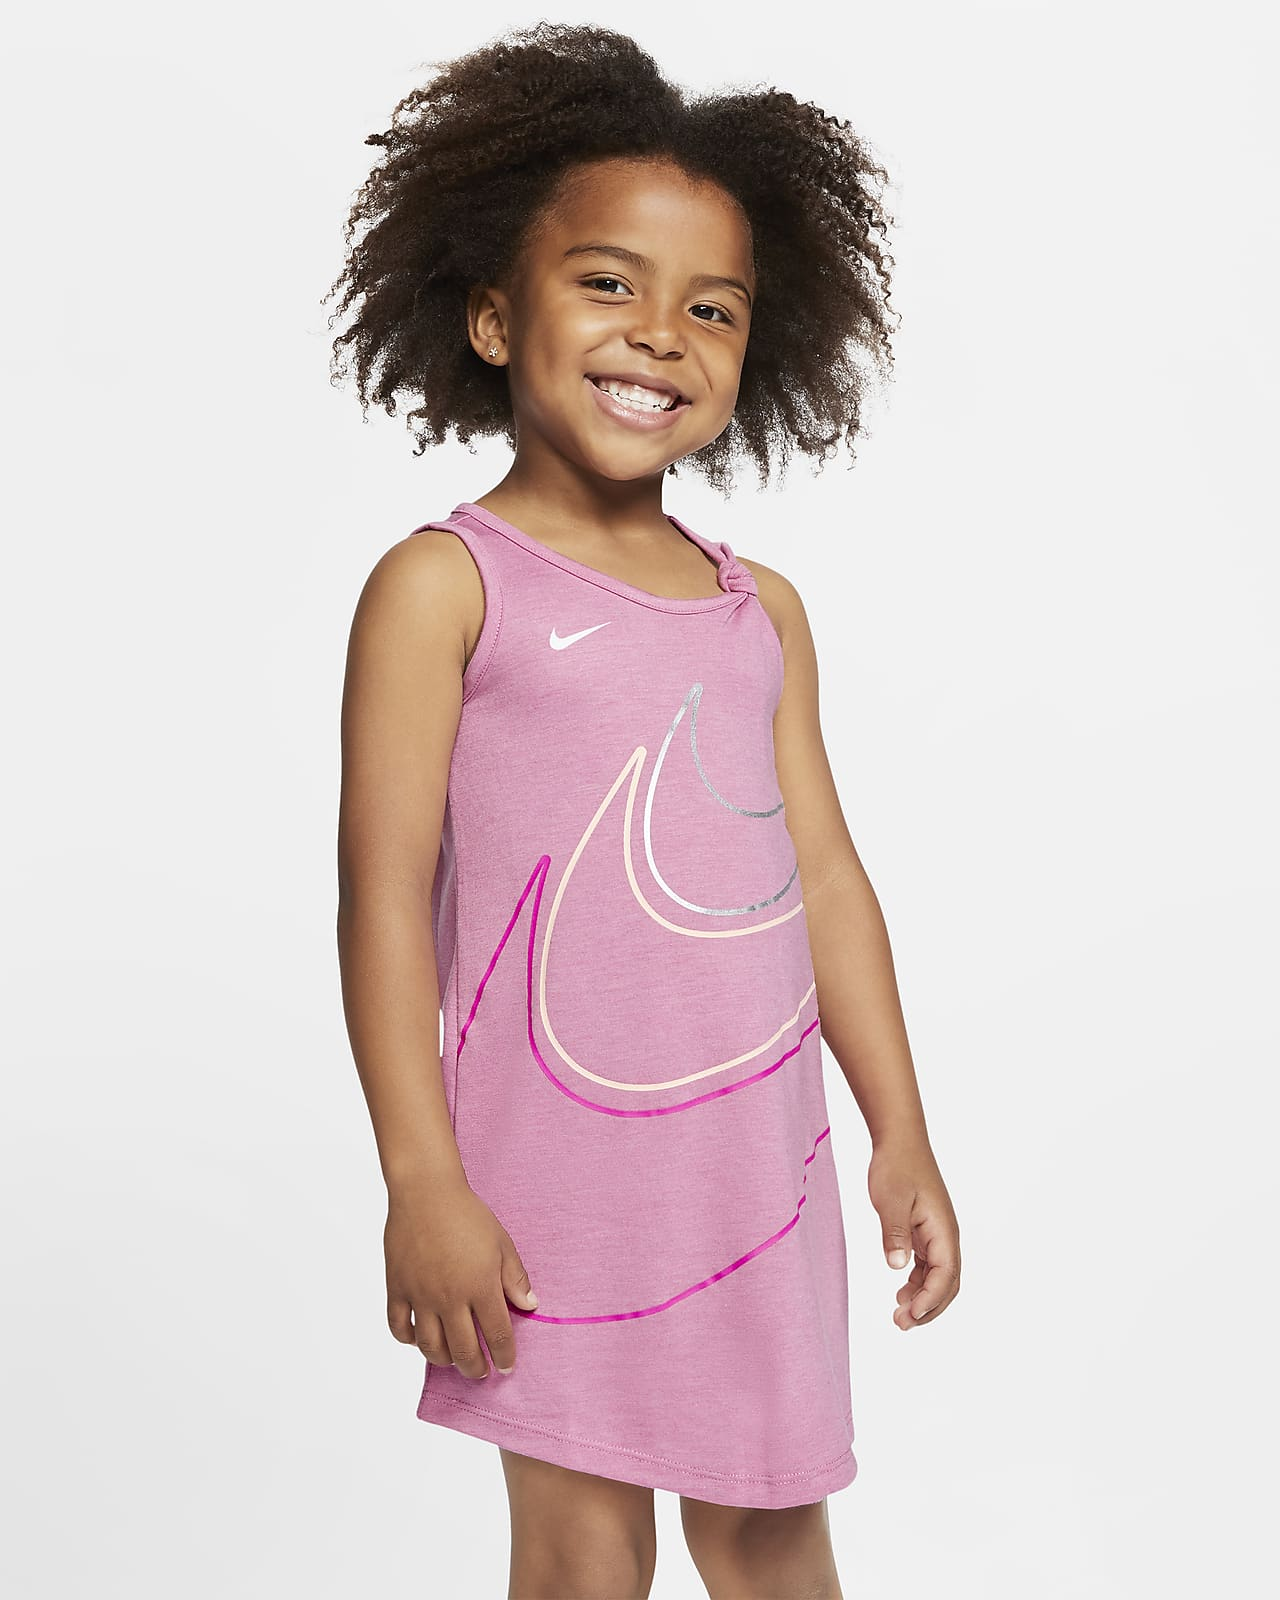 Nike Toddler Dress